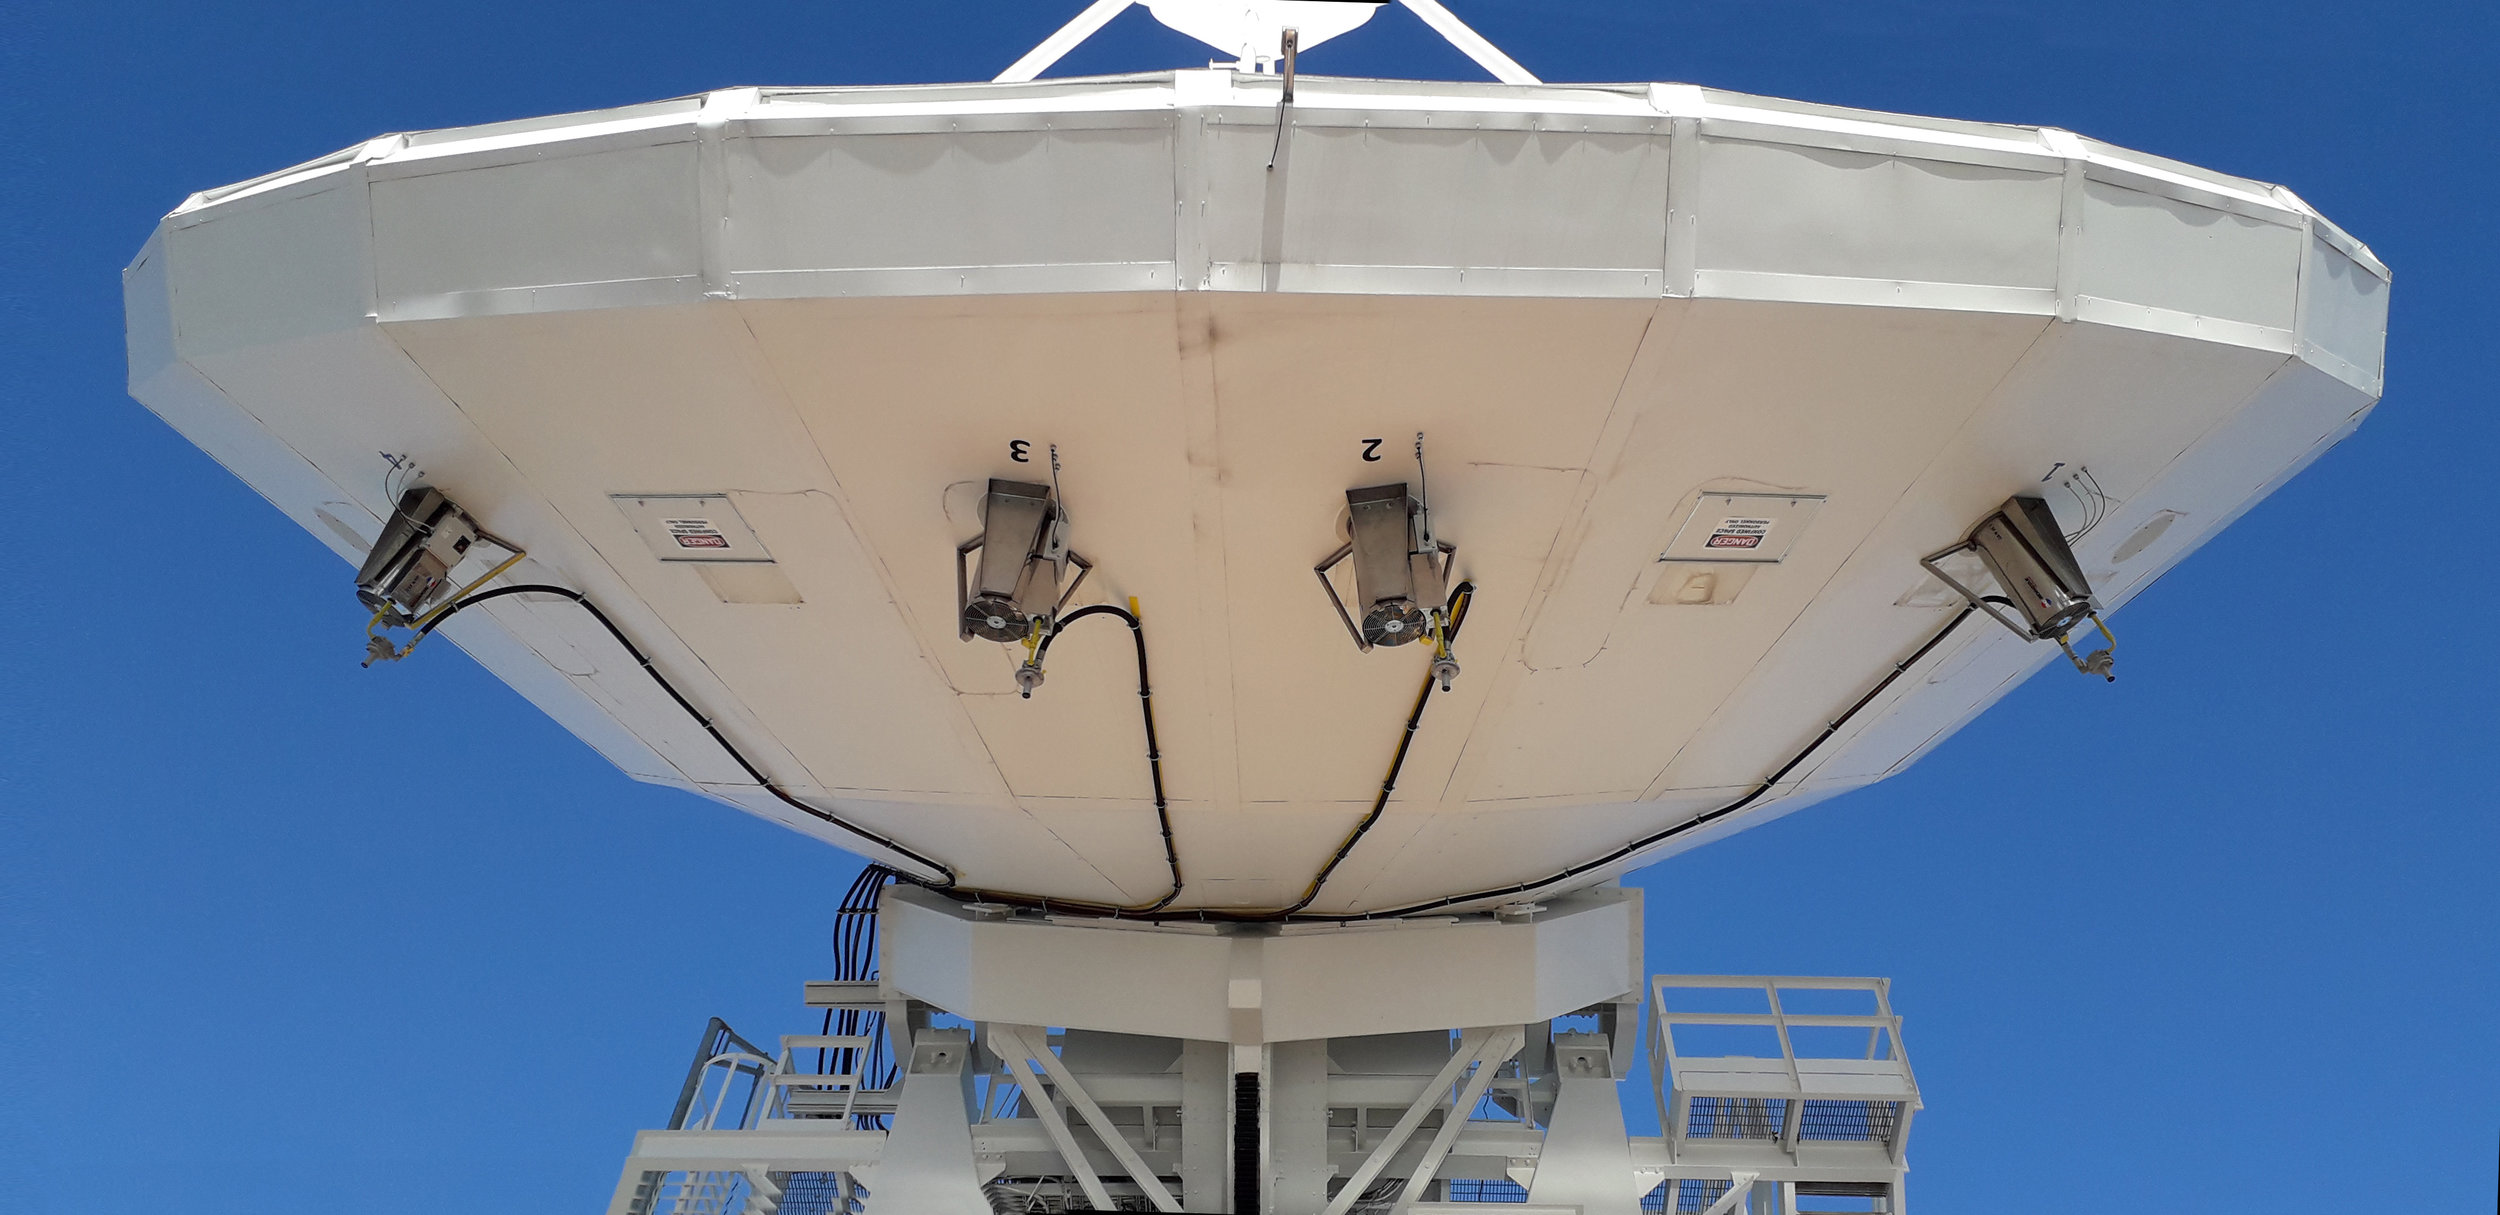 Hot air generators to heat the antennas of a large teleport that works with in-orbit control of satellites